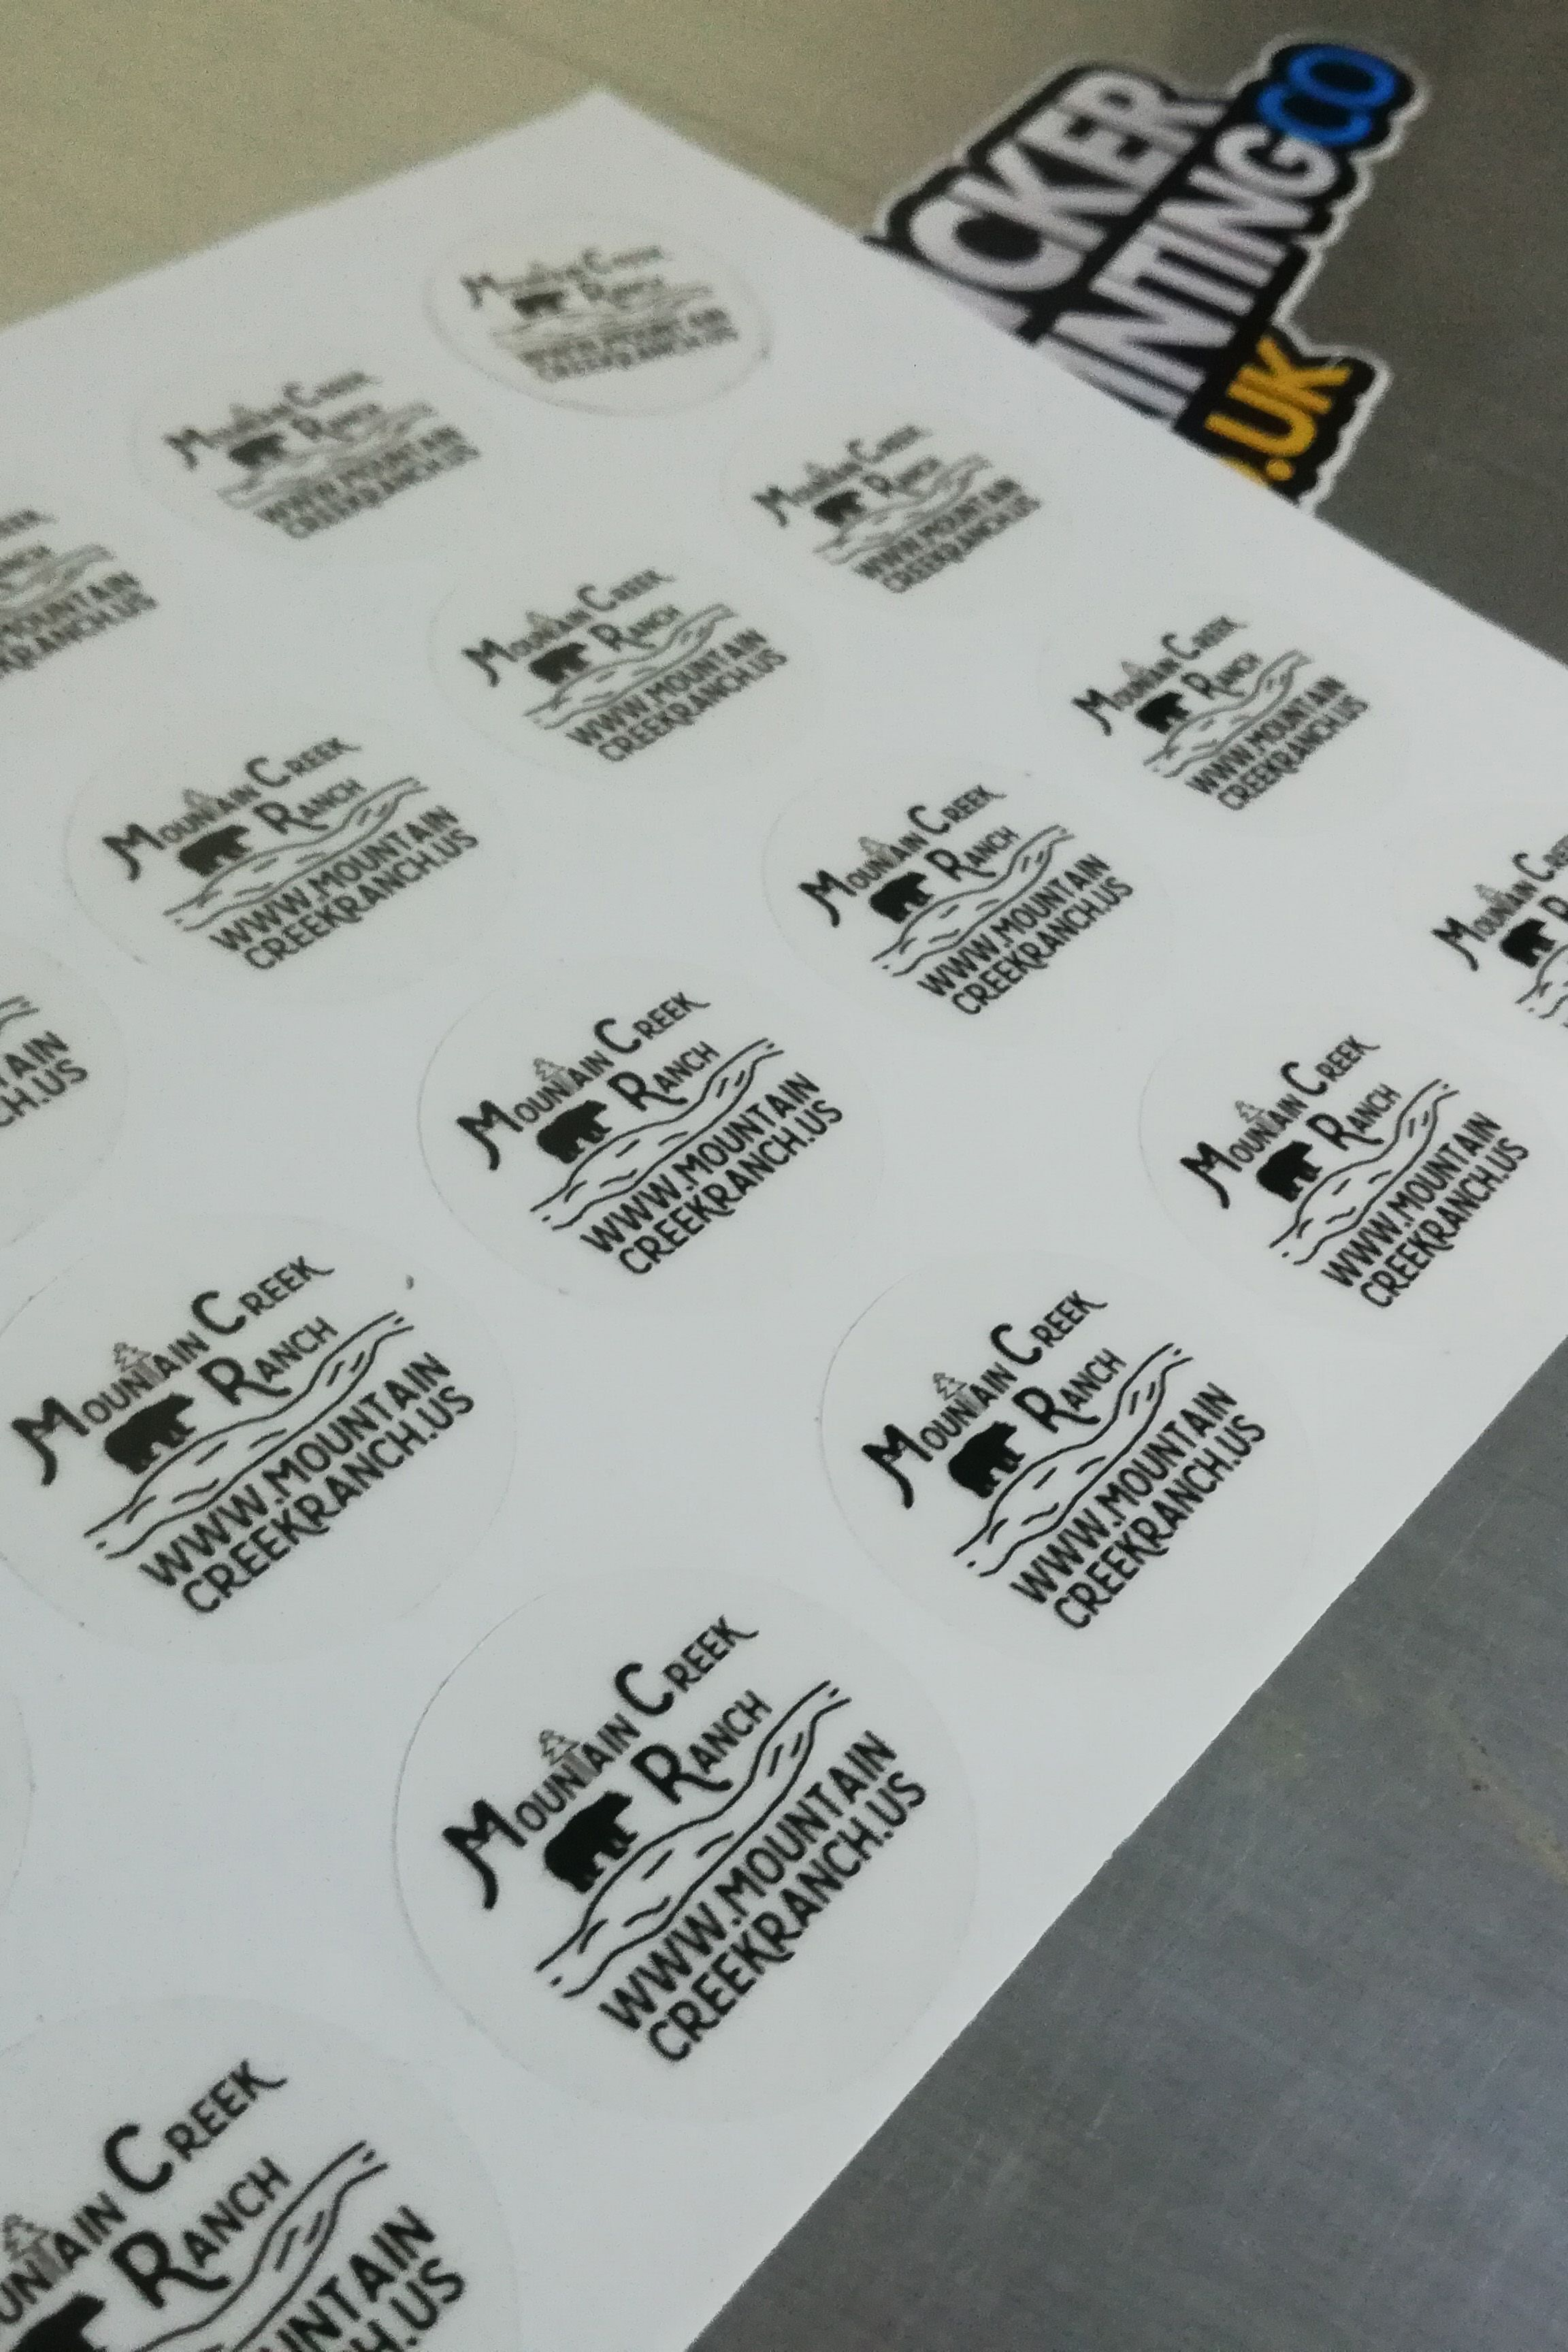 Order transparent sticker printing in uk with cheap sticker printing company